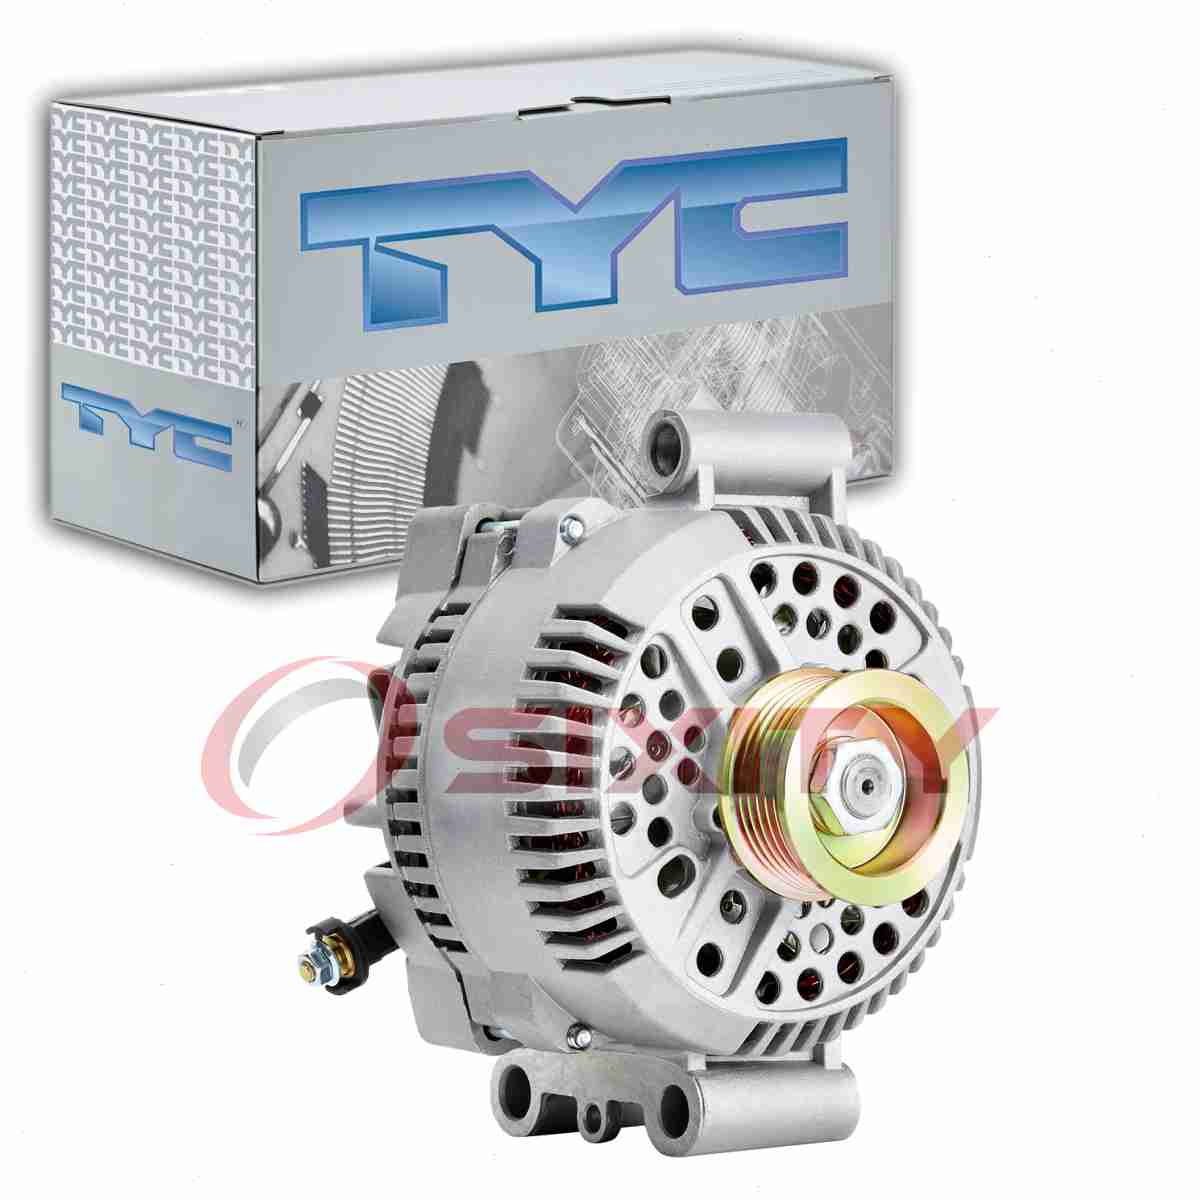 TYC Alternator for 1996-2004 Ford Explorer 4.0L V6 5.0L V8 qs